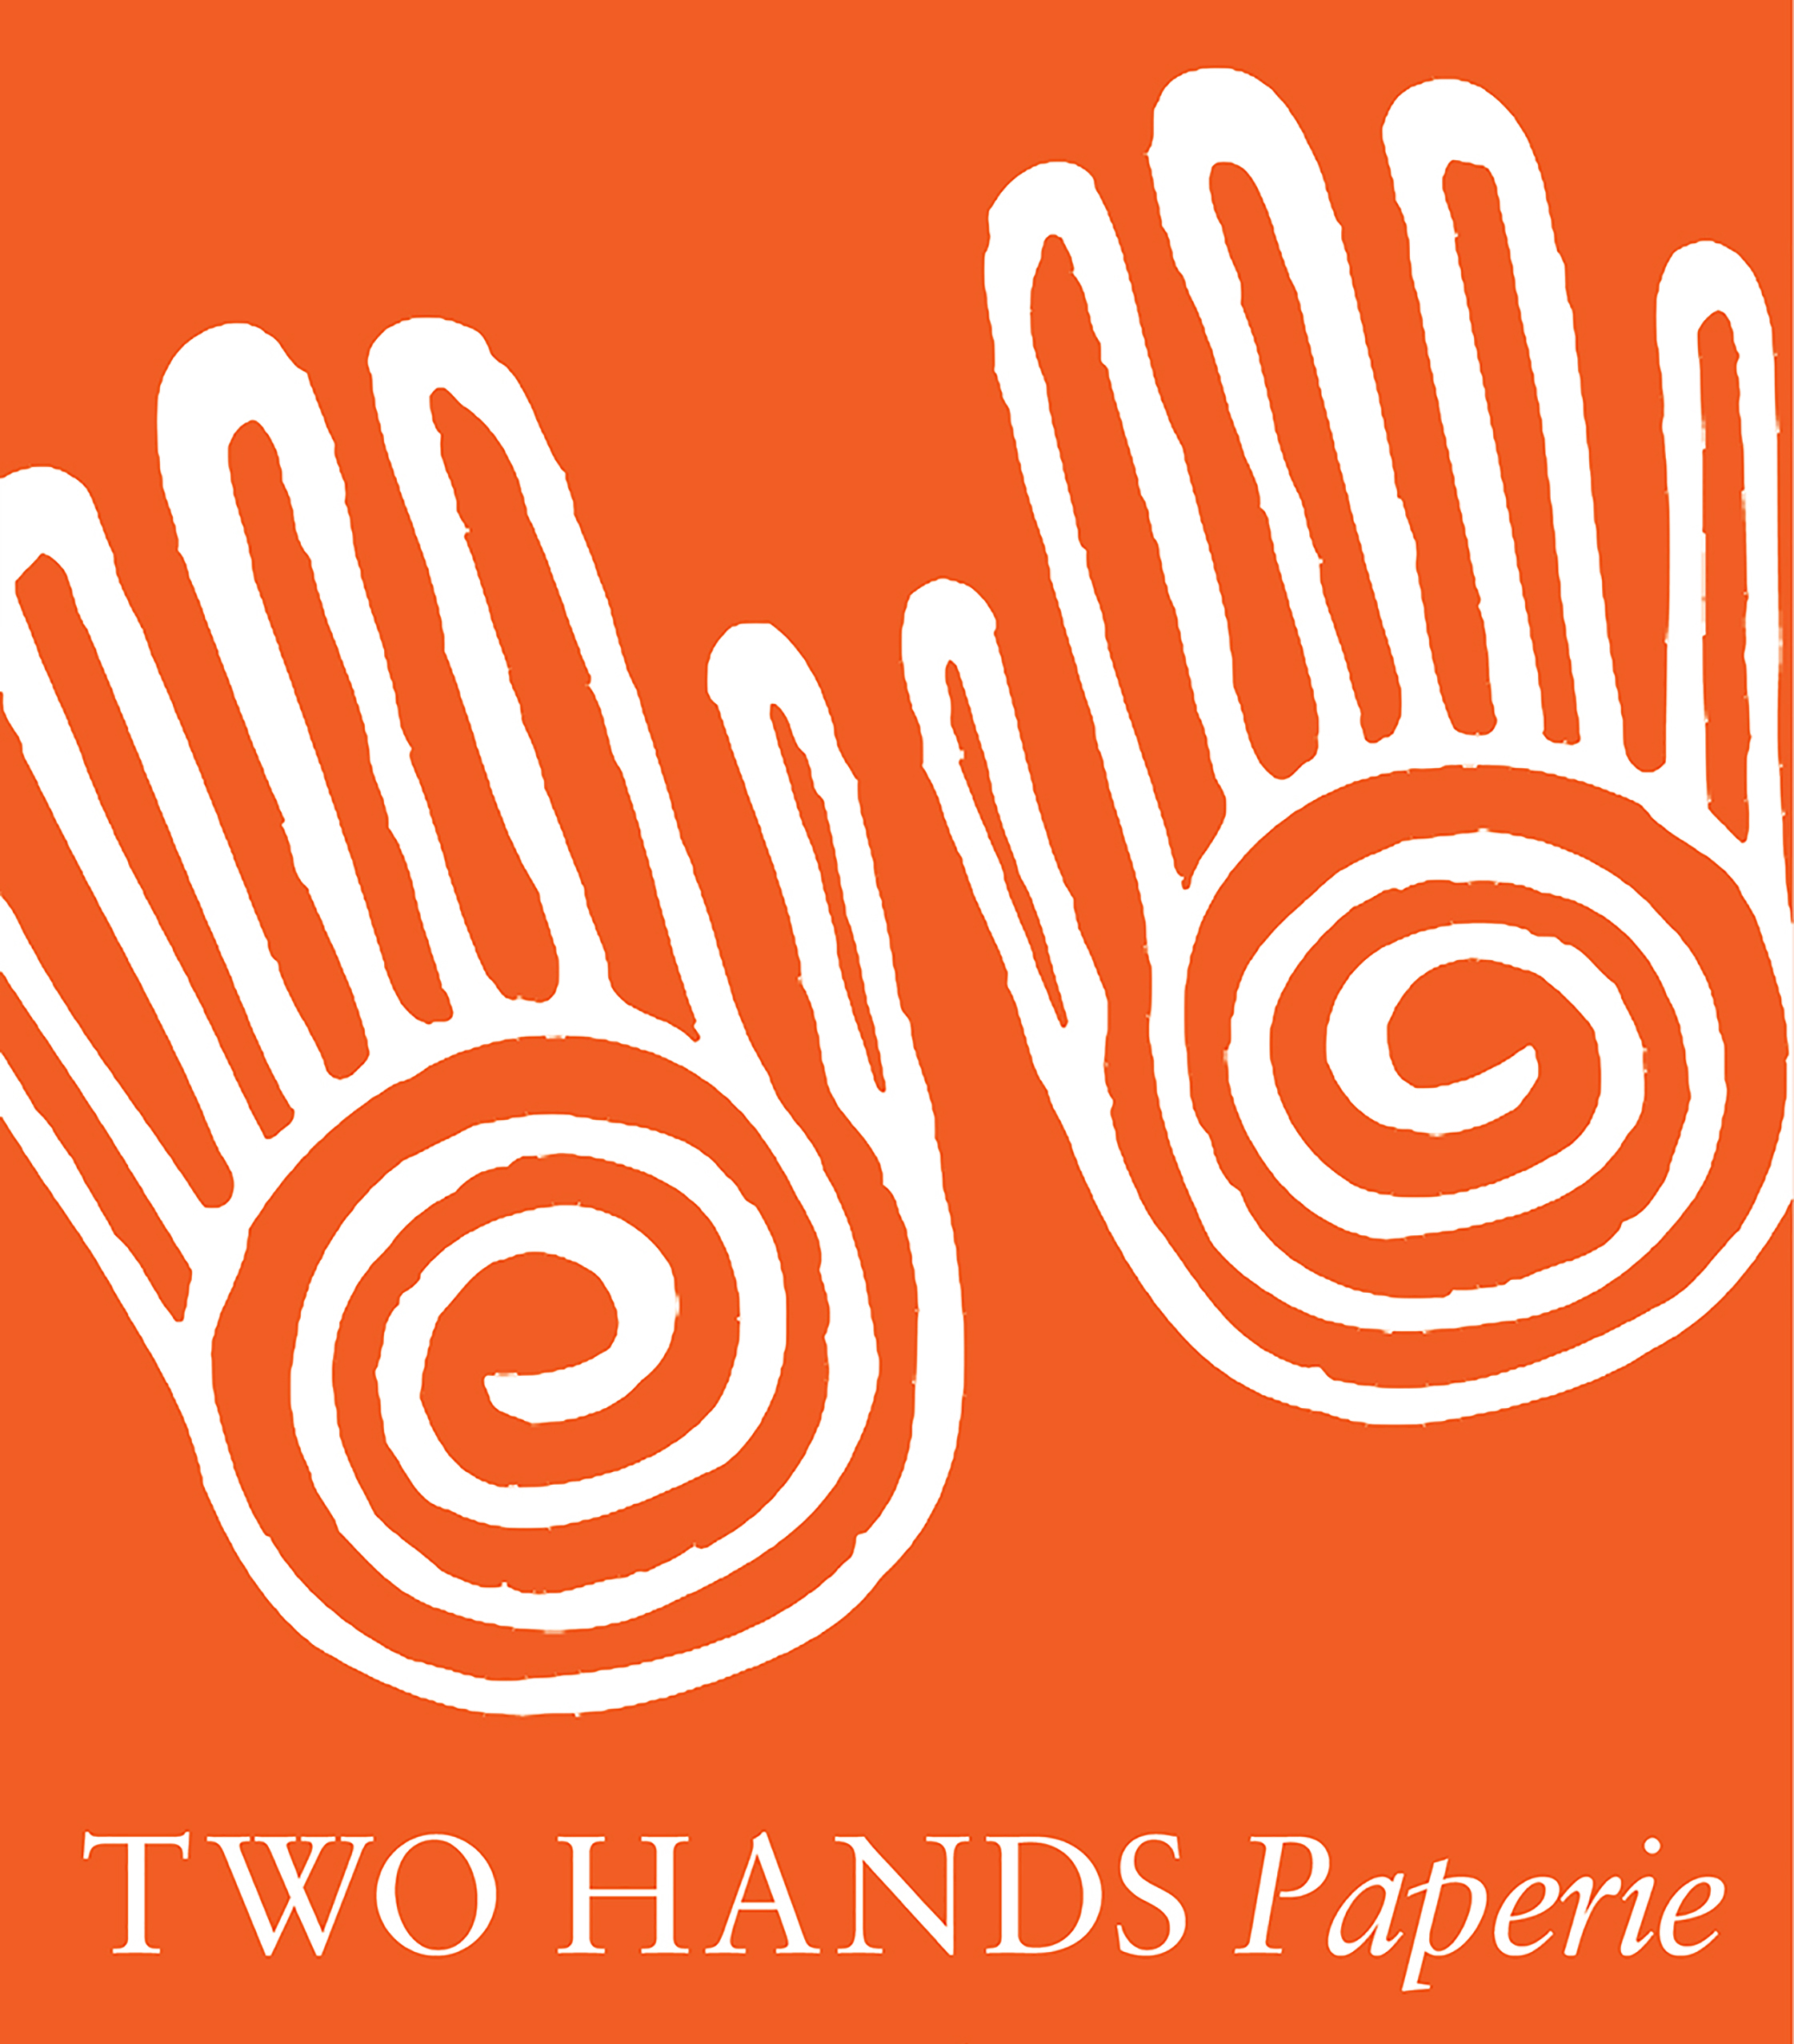 Two Hands Paperie logo